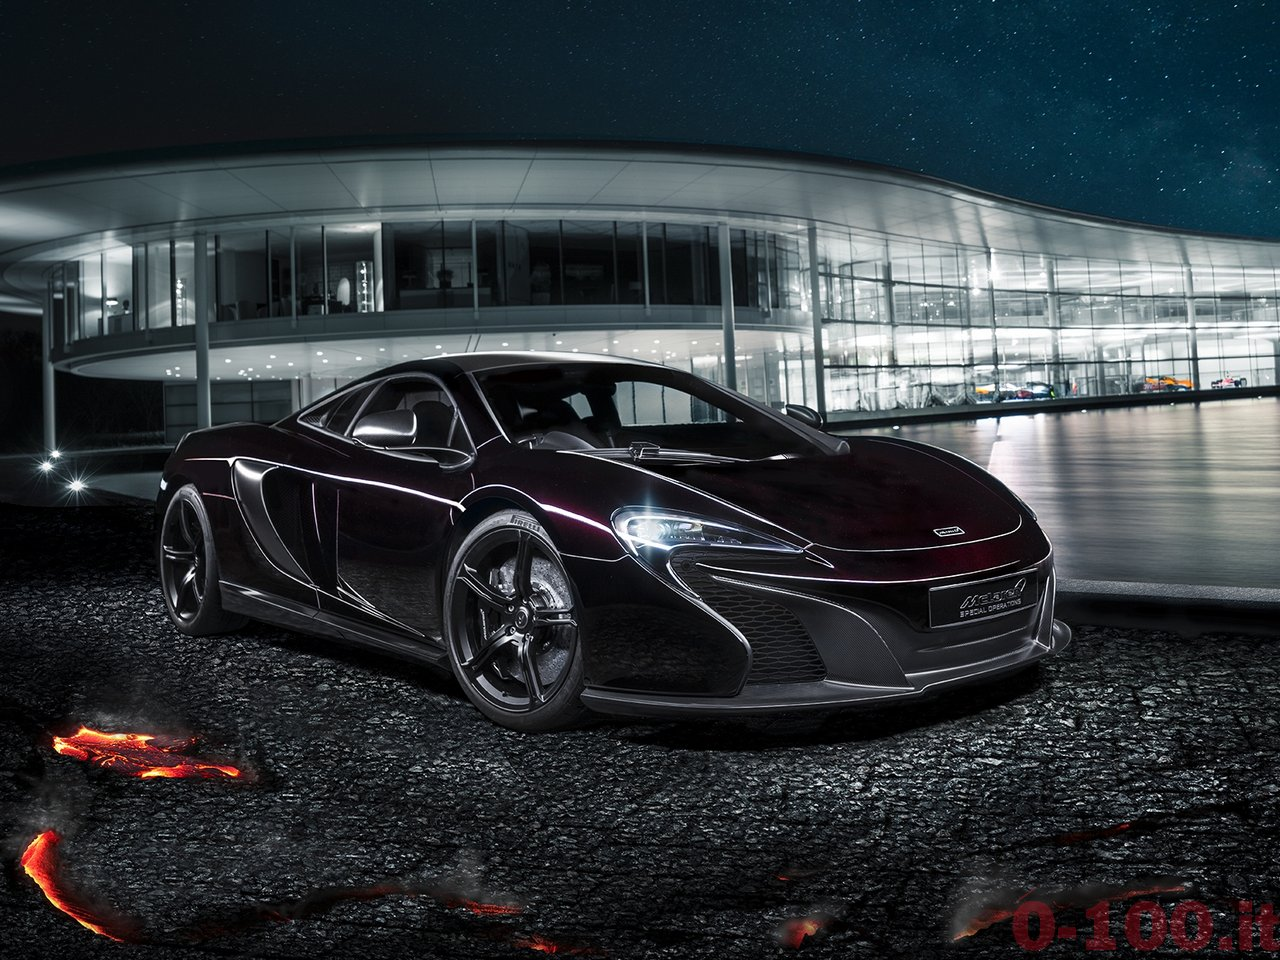 mclaren-special-operations-mclaren-650s-coupe-concept_0-100_1